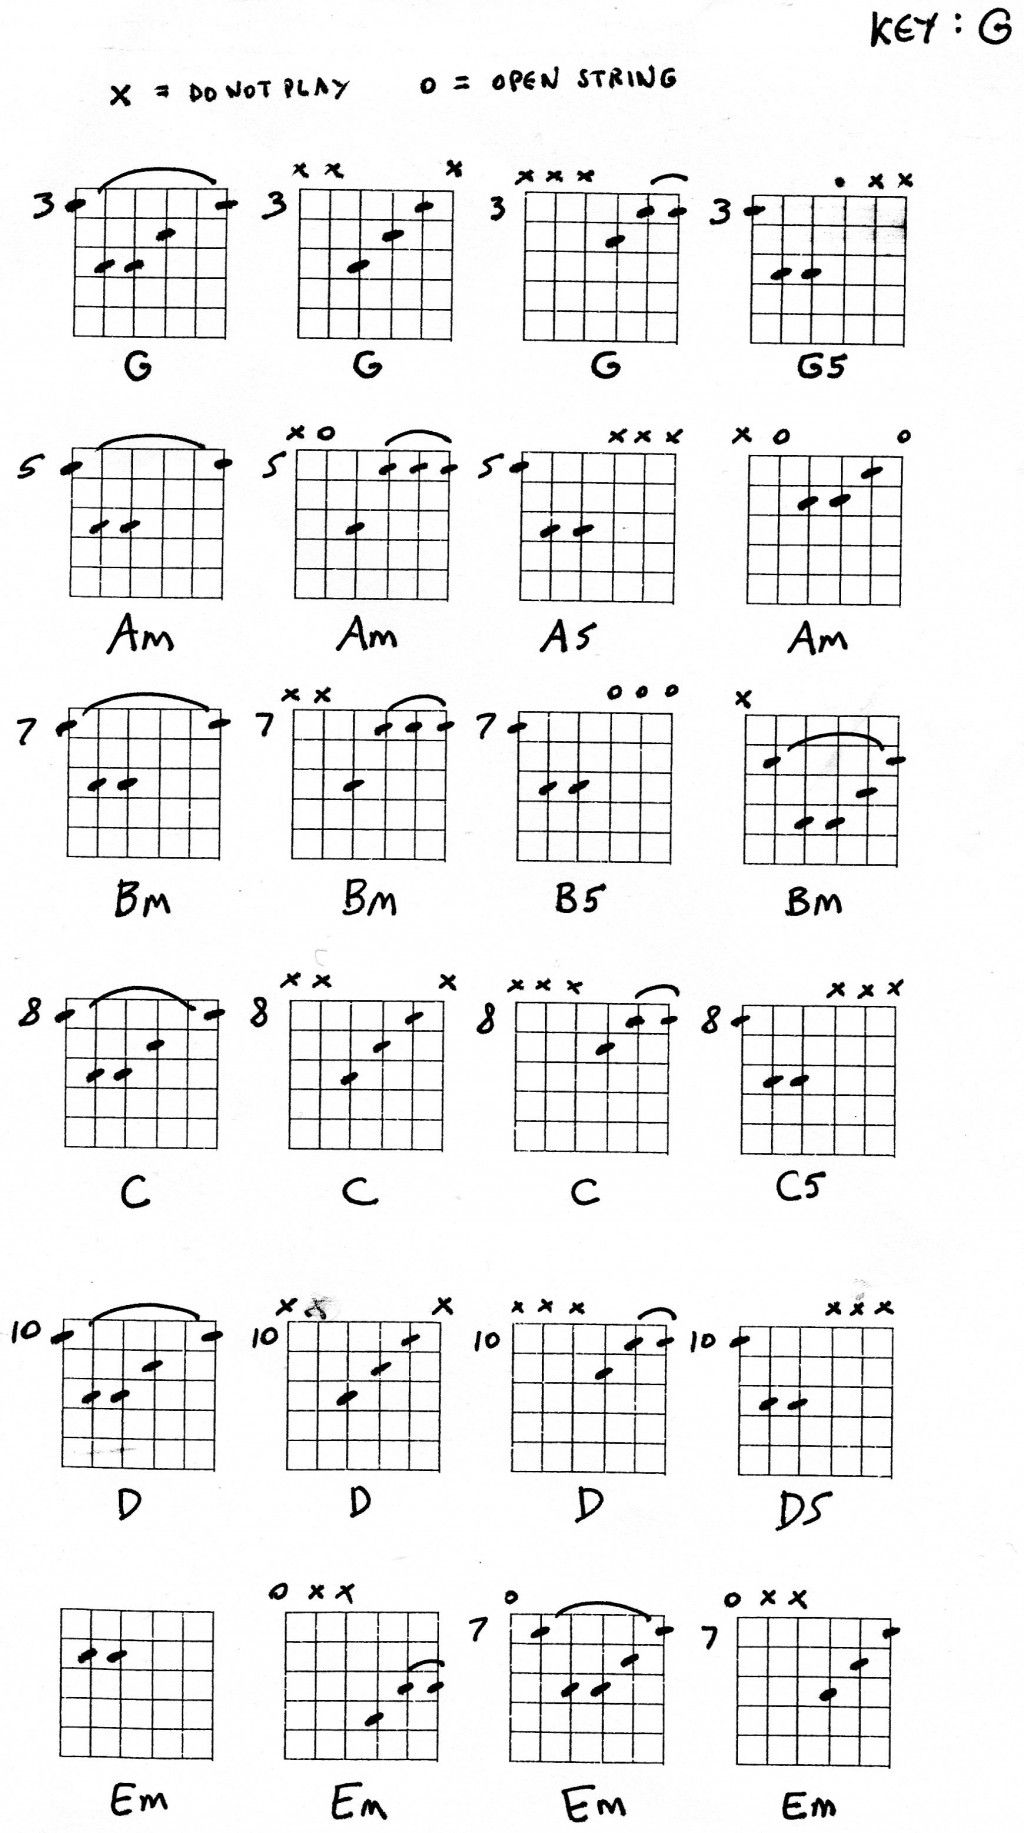 Chord theory guitar gallery guitar chords examples guitar chords theory short cuts guitar chords music theory guitar chords theory short cuts fatherlandz gallery hexwebz Images